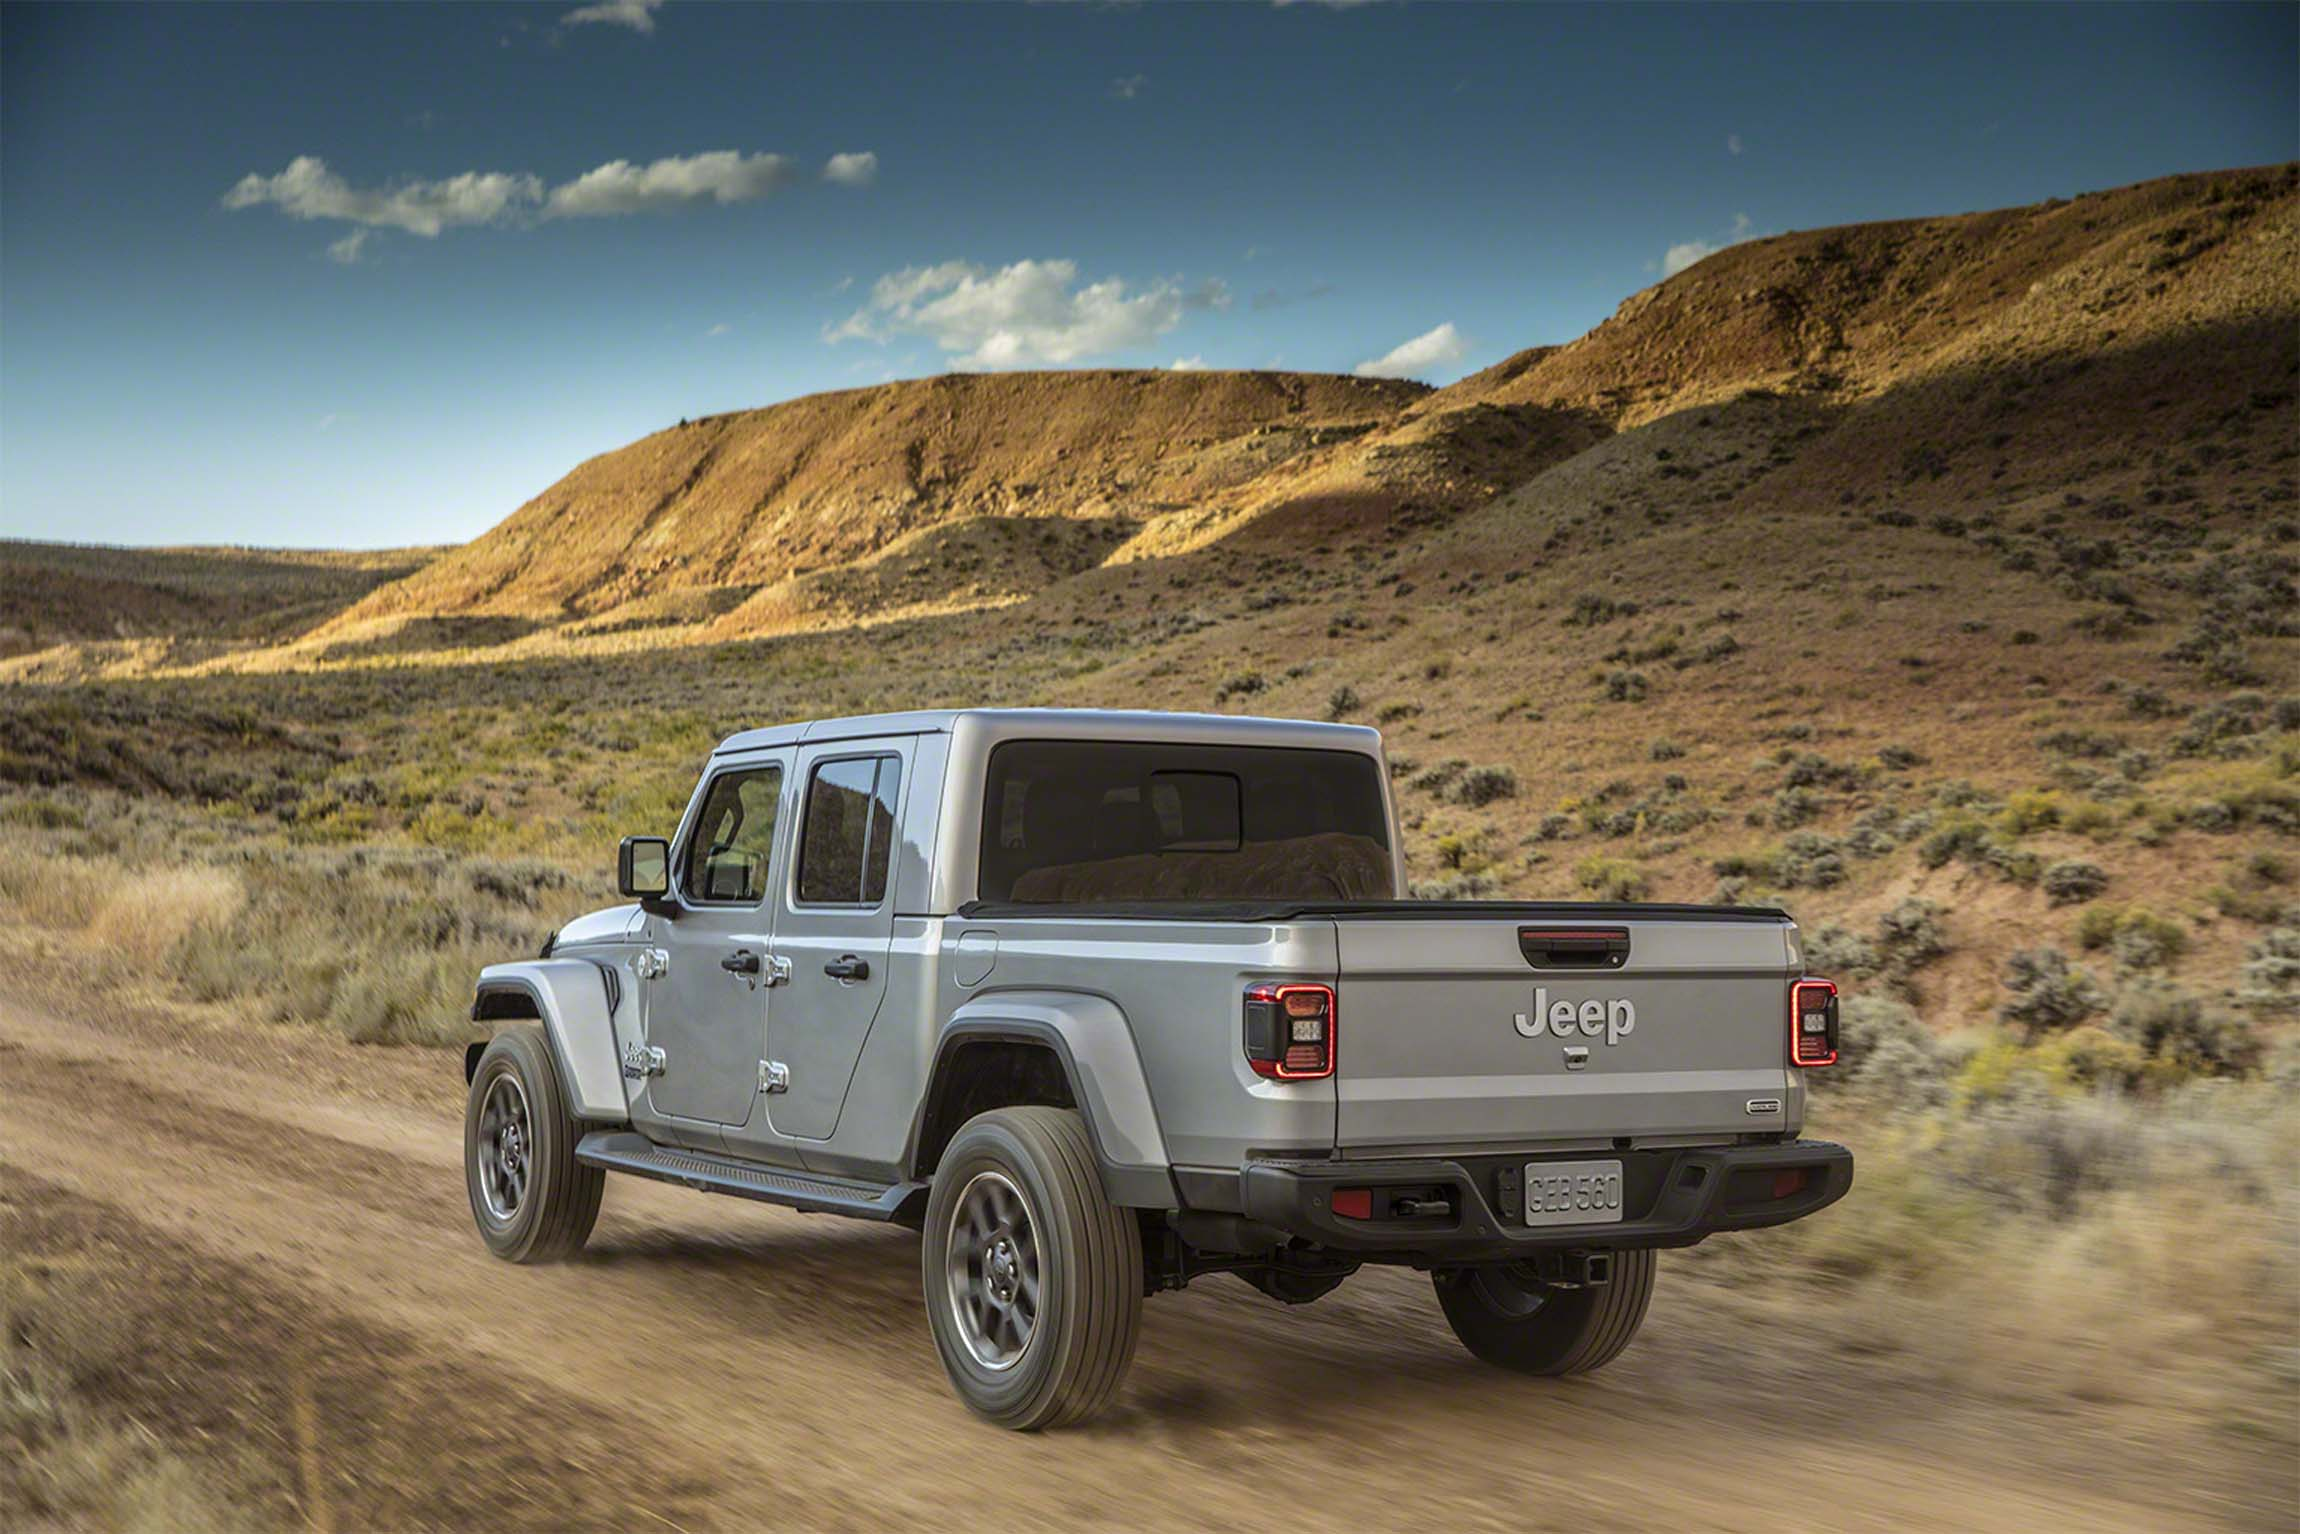 2020 Jeep Gladiator pickup priced from $35,040